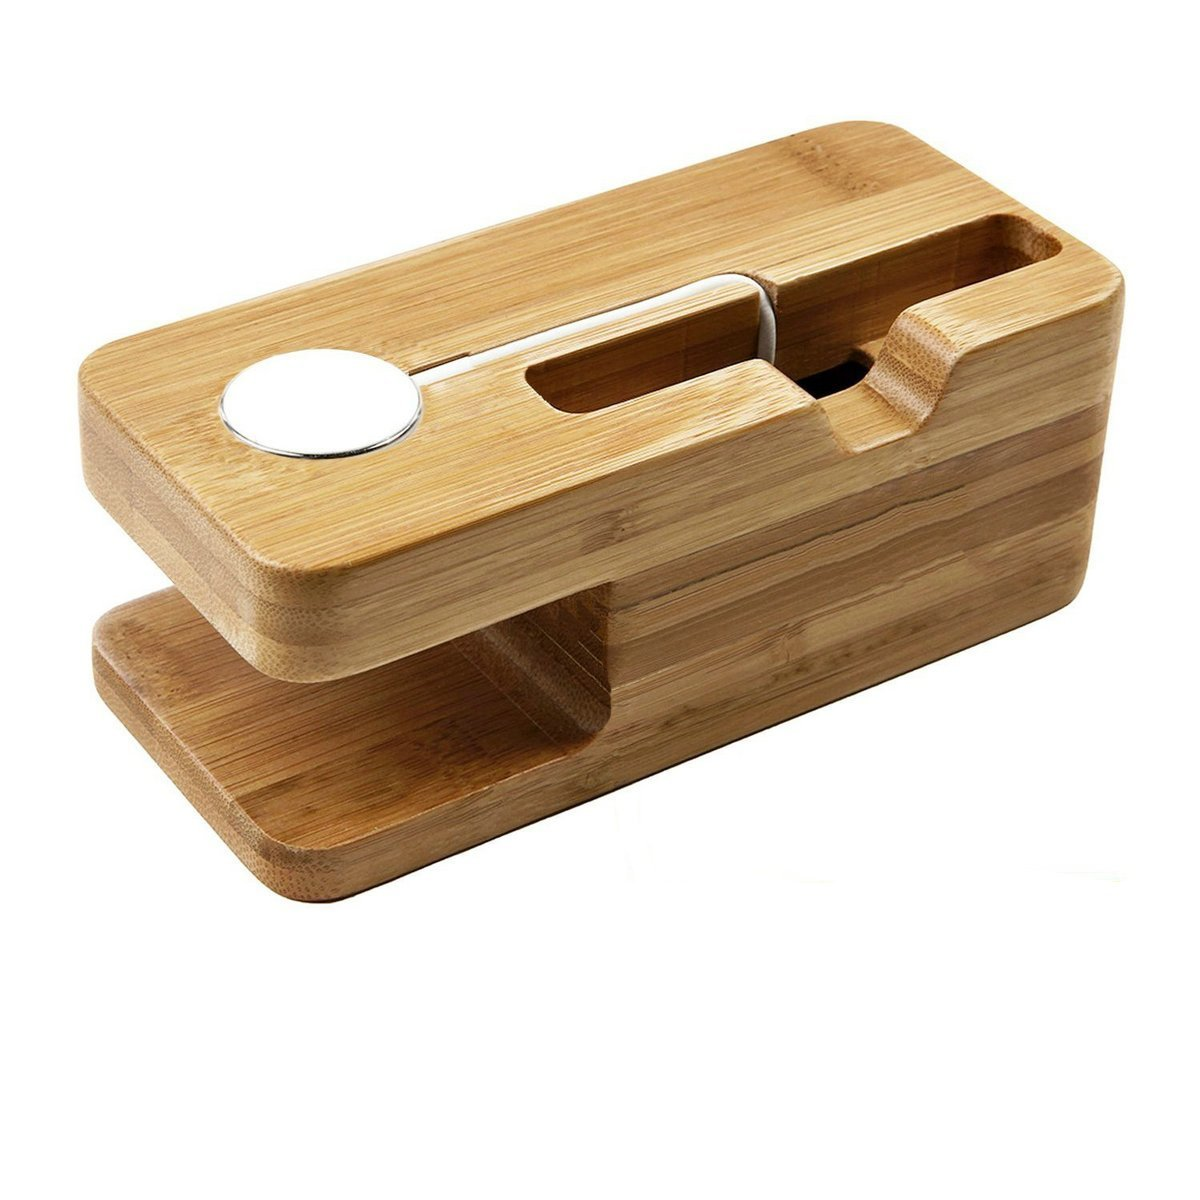 Moonsix iWatch Bamboo Wood Charging Stand Bracket Docking Station Stock Cradle Holder For Apple Watch iPhone